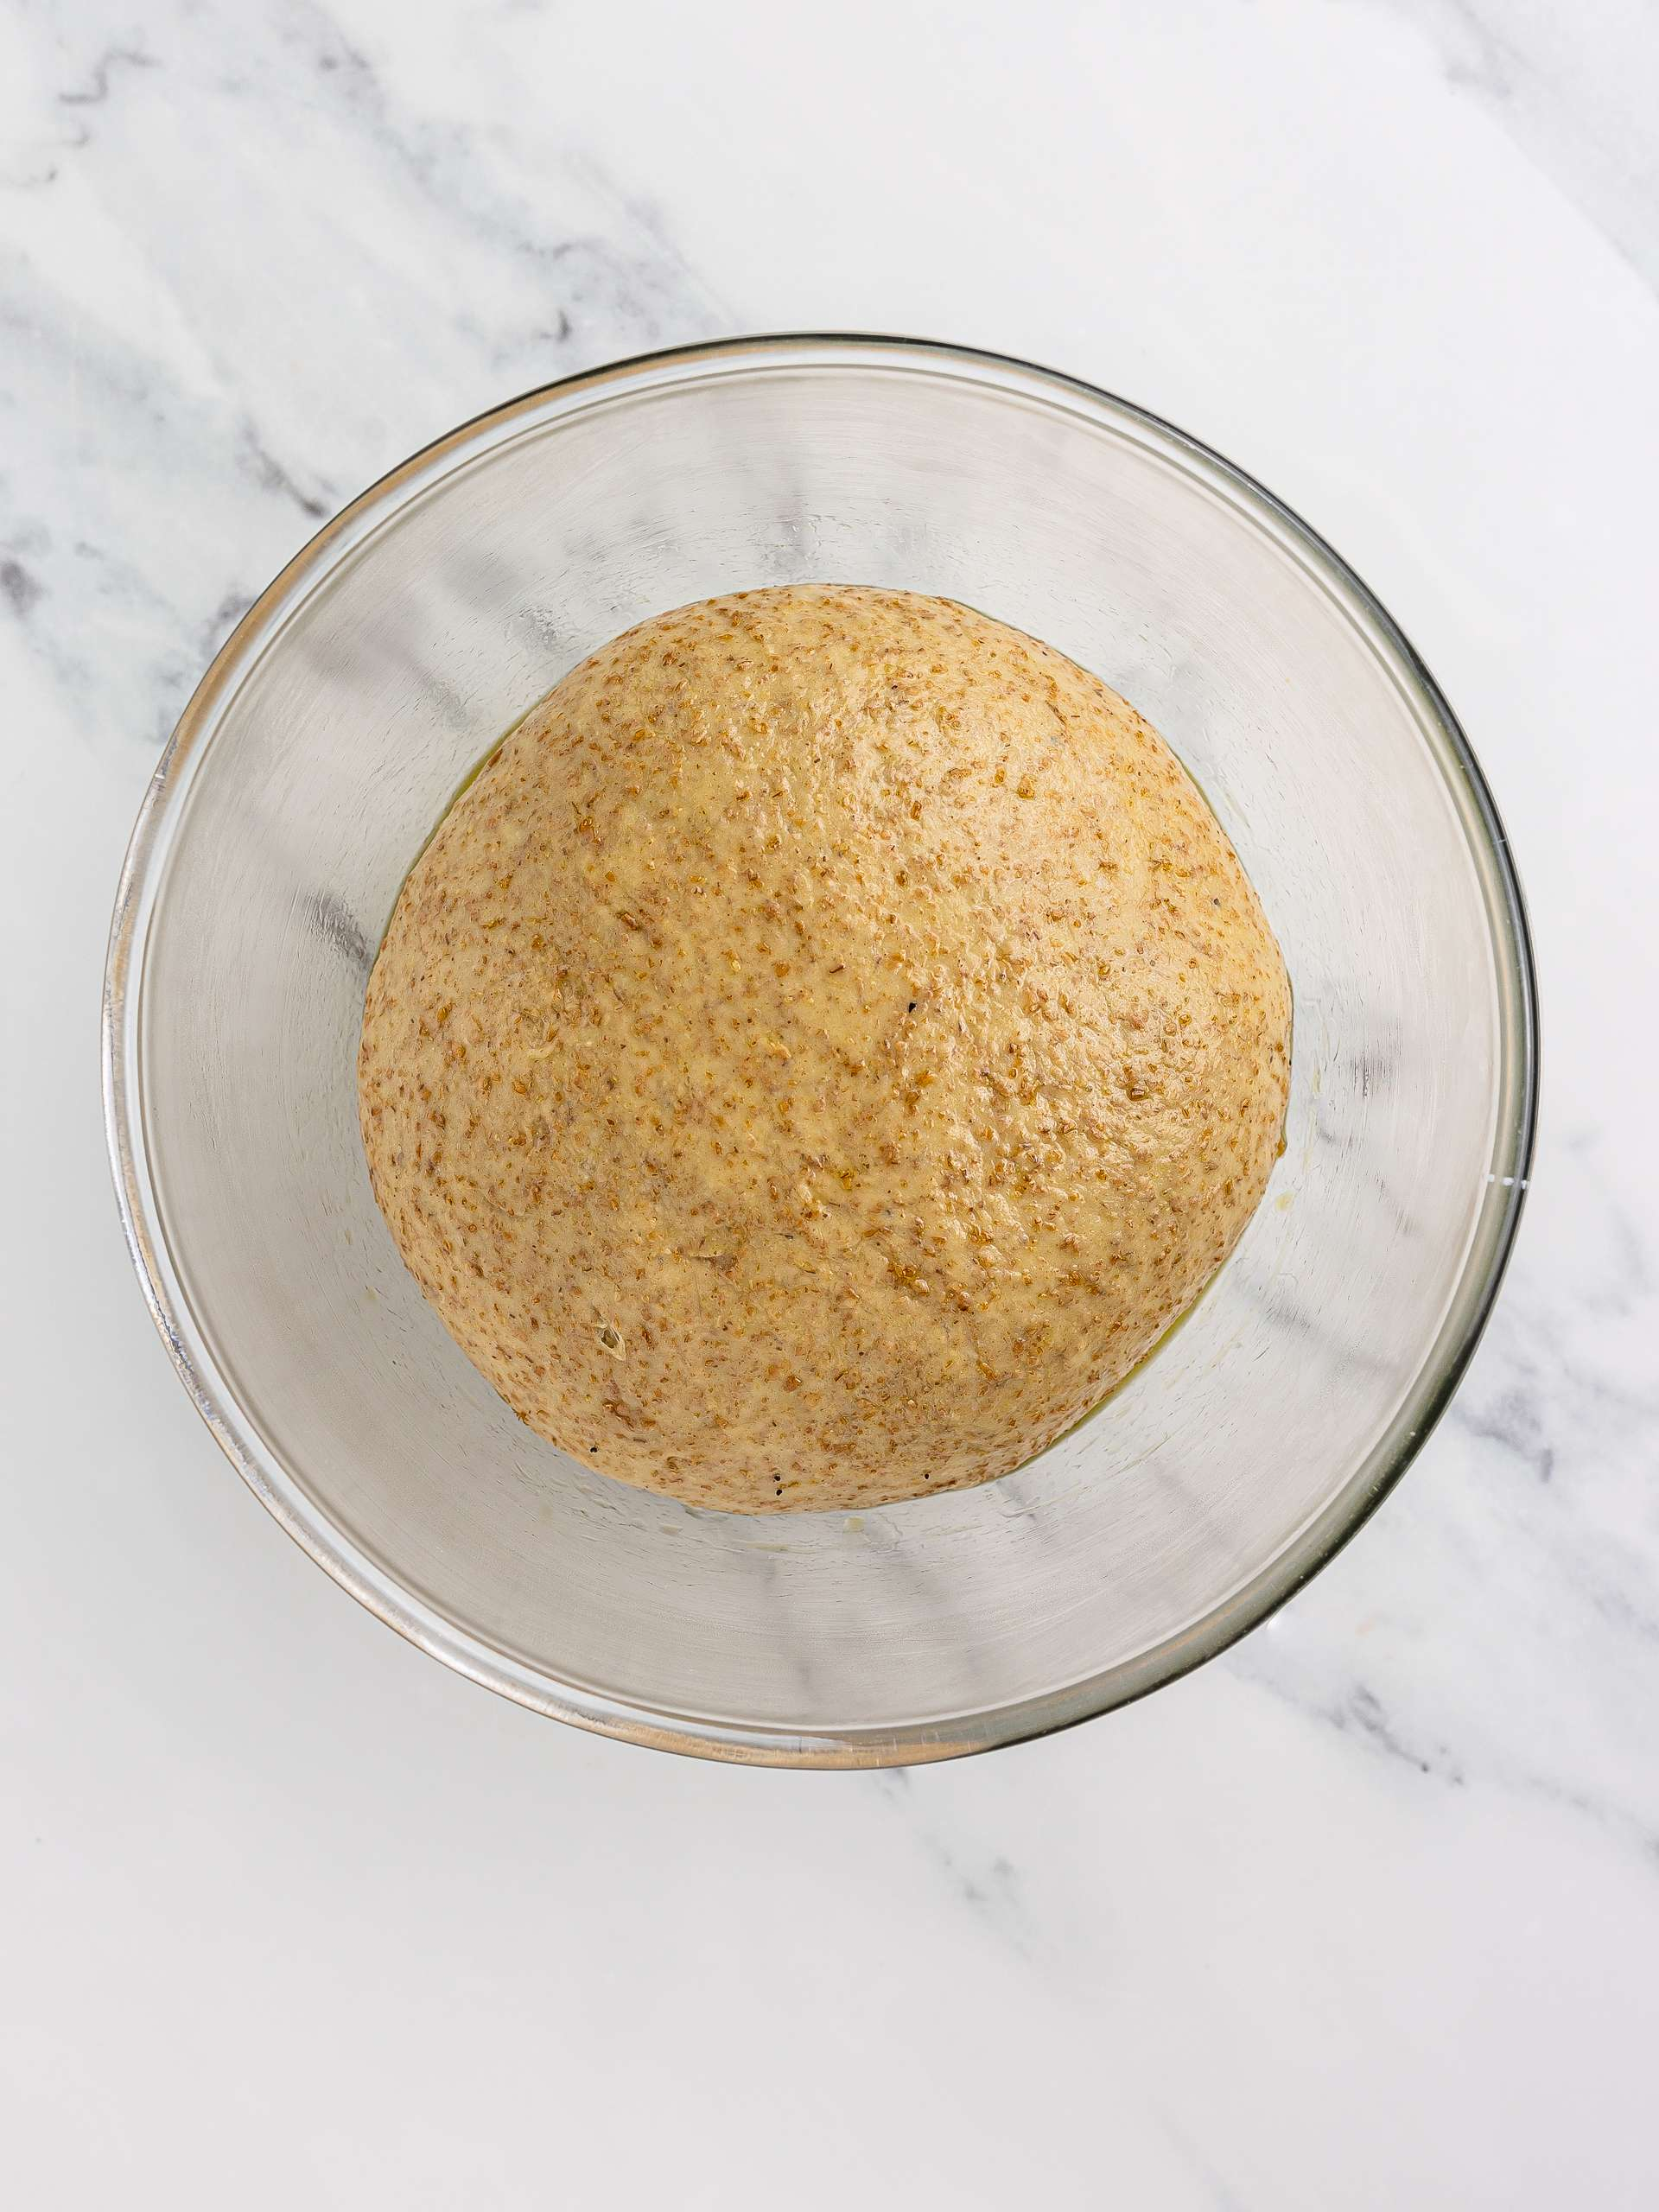 proved yeast cake dough in a bowl